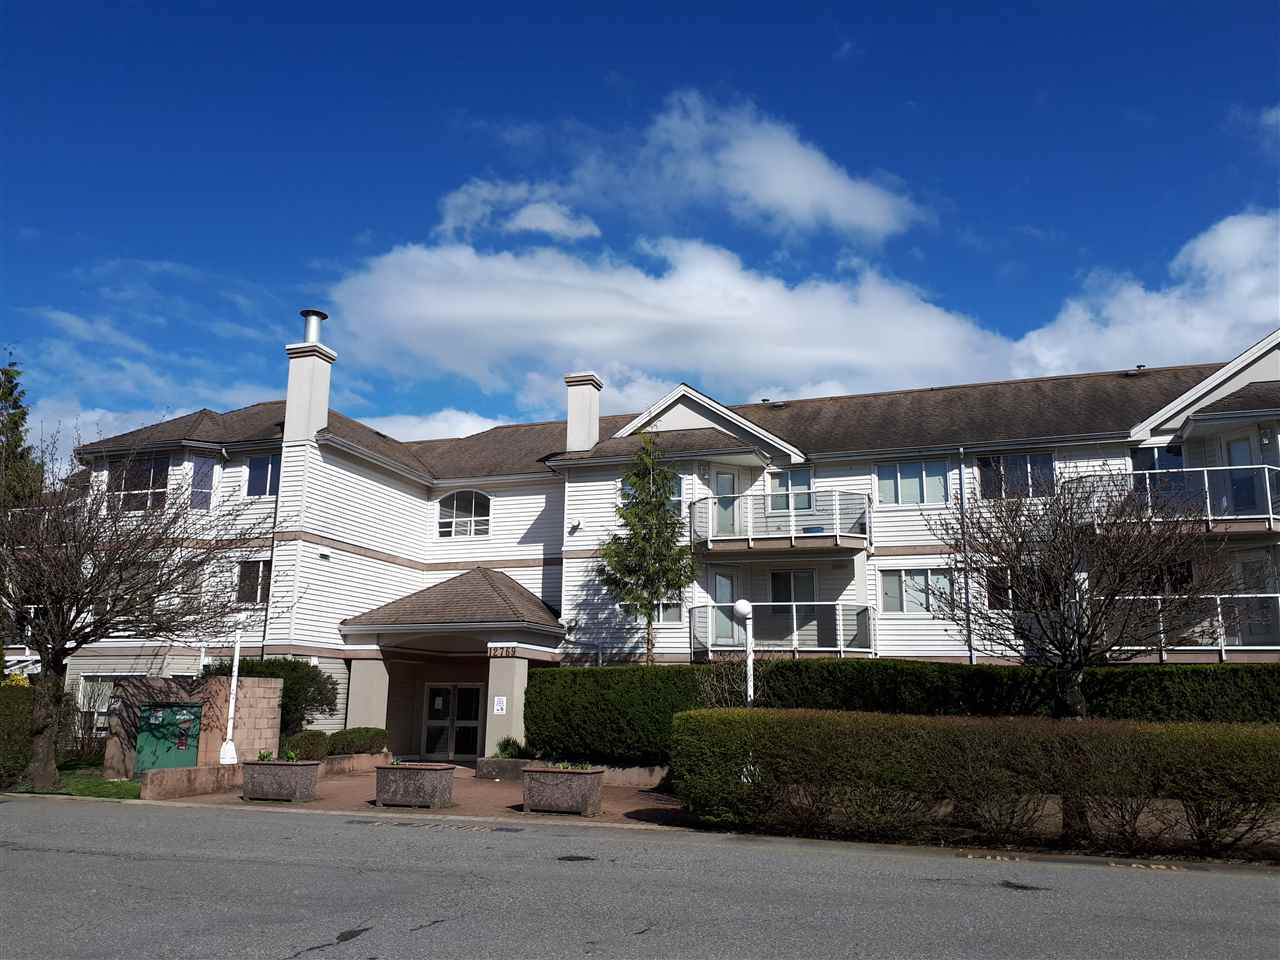 Main Photo: 206 12769 72 AVENUE in Surrey: West Newton Condo for sale : MLS®# R2257906